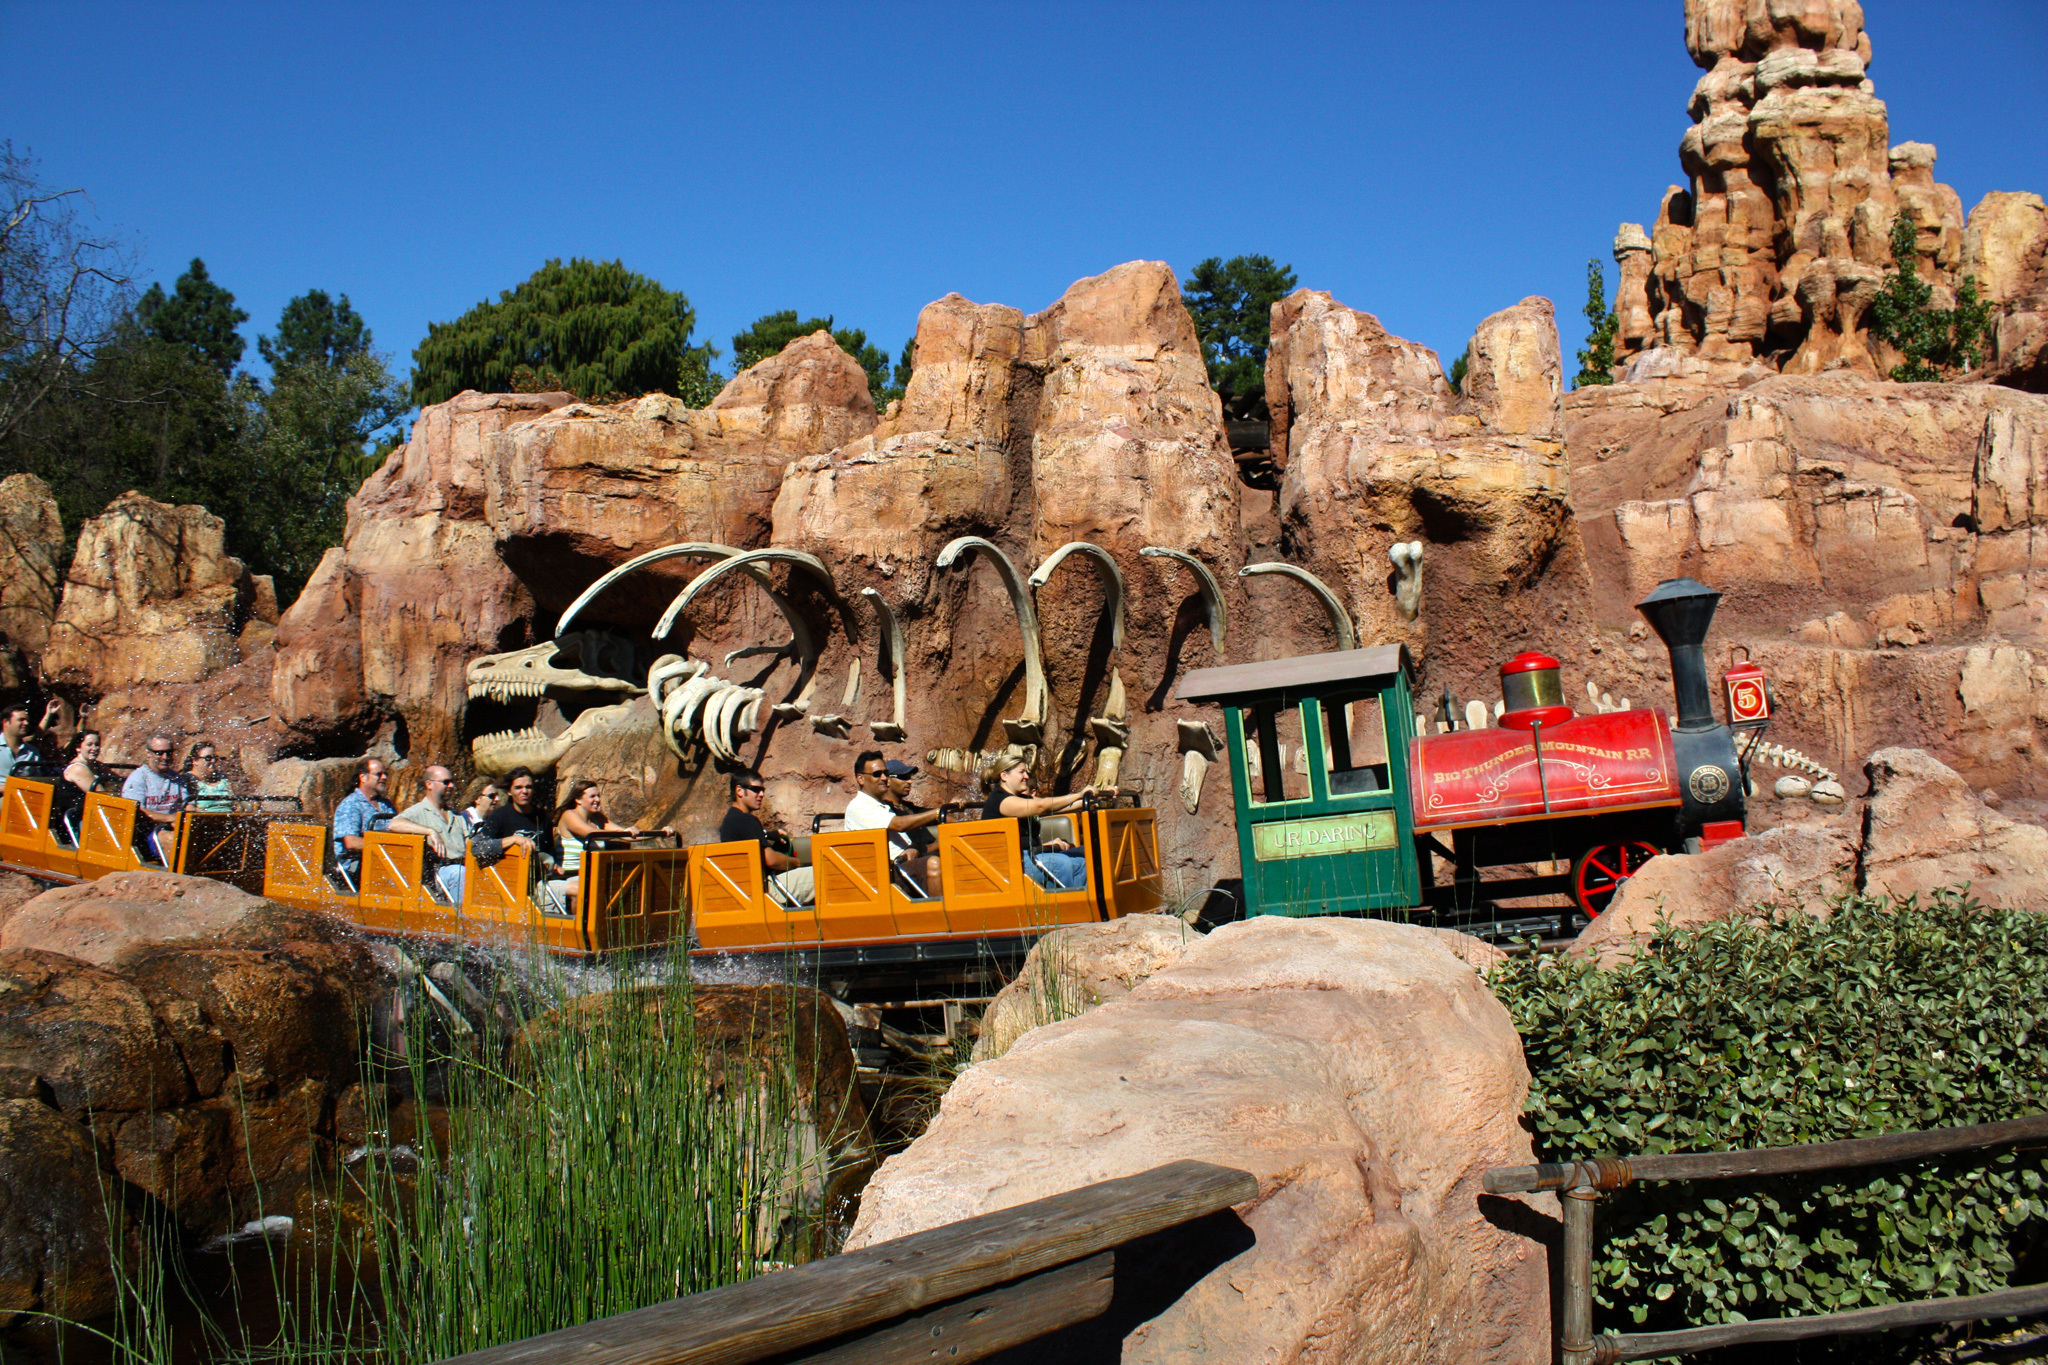 25 Disneyland Rides That You Need To Go On, Ranked